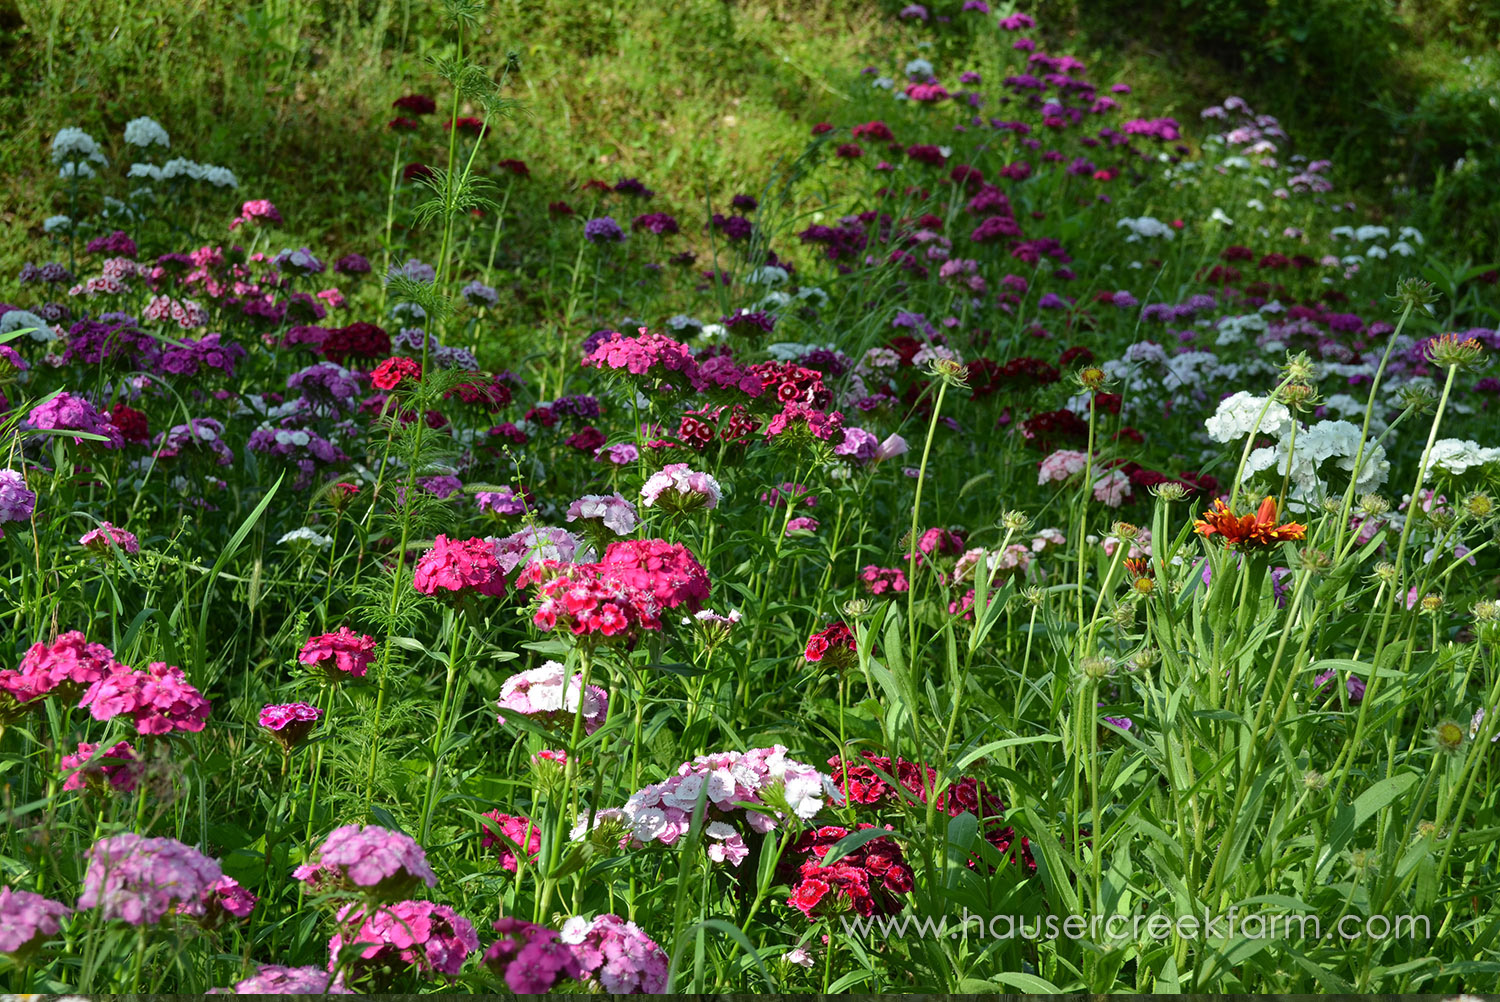 field-of-sweet-william-at-hauser-creek-farm-photo-by-alethea-segal.jpg